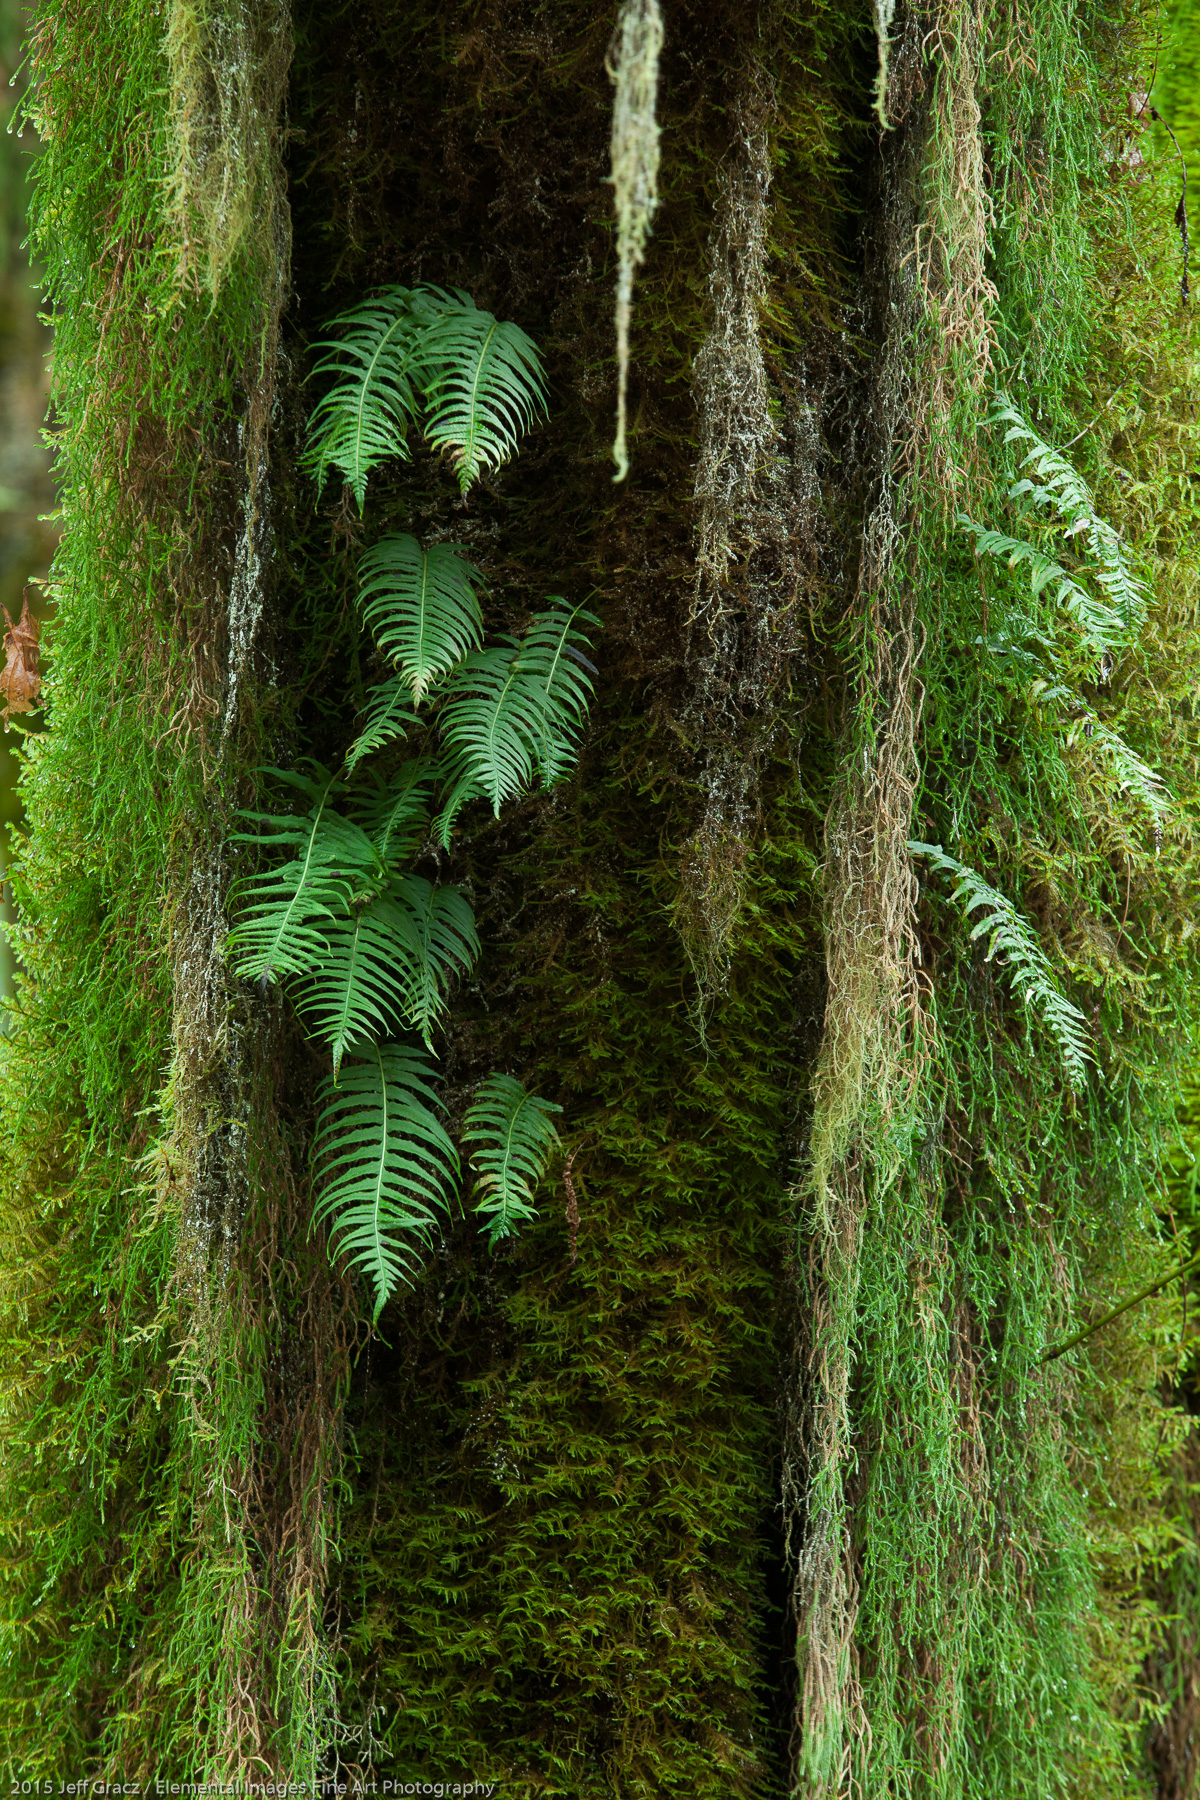 Licorice Ferns | Olympic National Park | WA | USA - © 2015 Jeff Gracz / Elemental Images Fine Art Photography - All Rights Reserved Worldwide